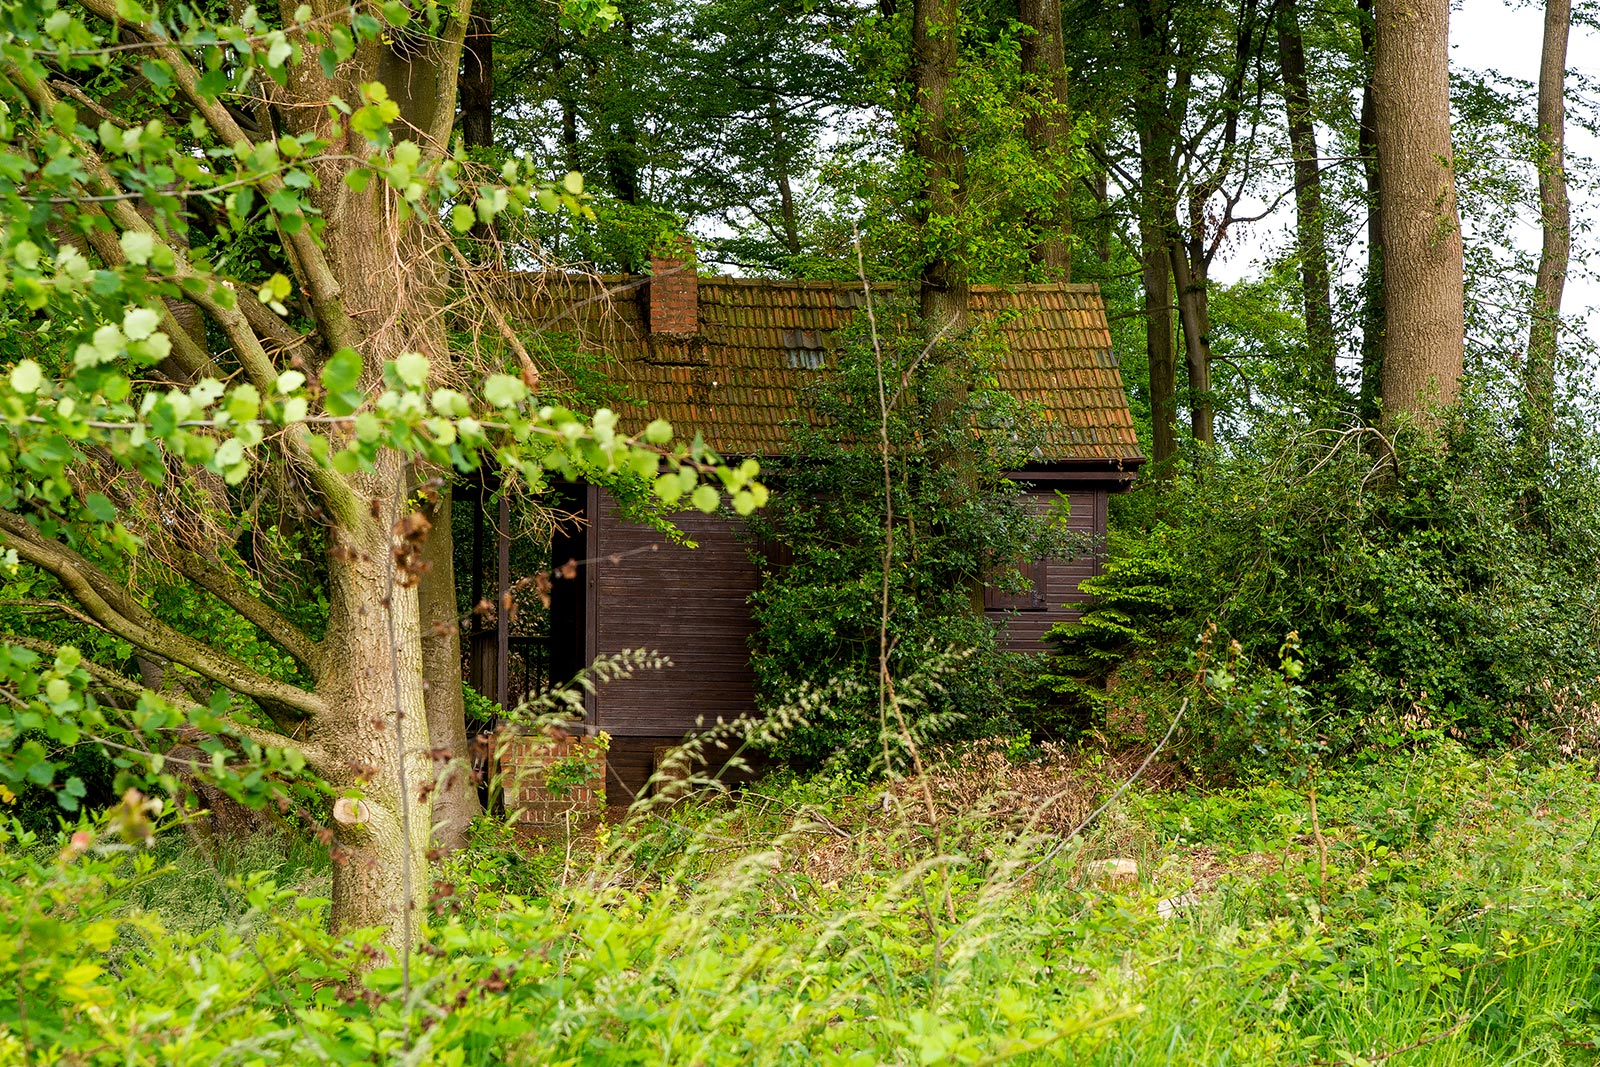 Cabin in the Woods in Engelskirchen